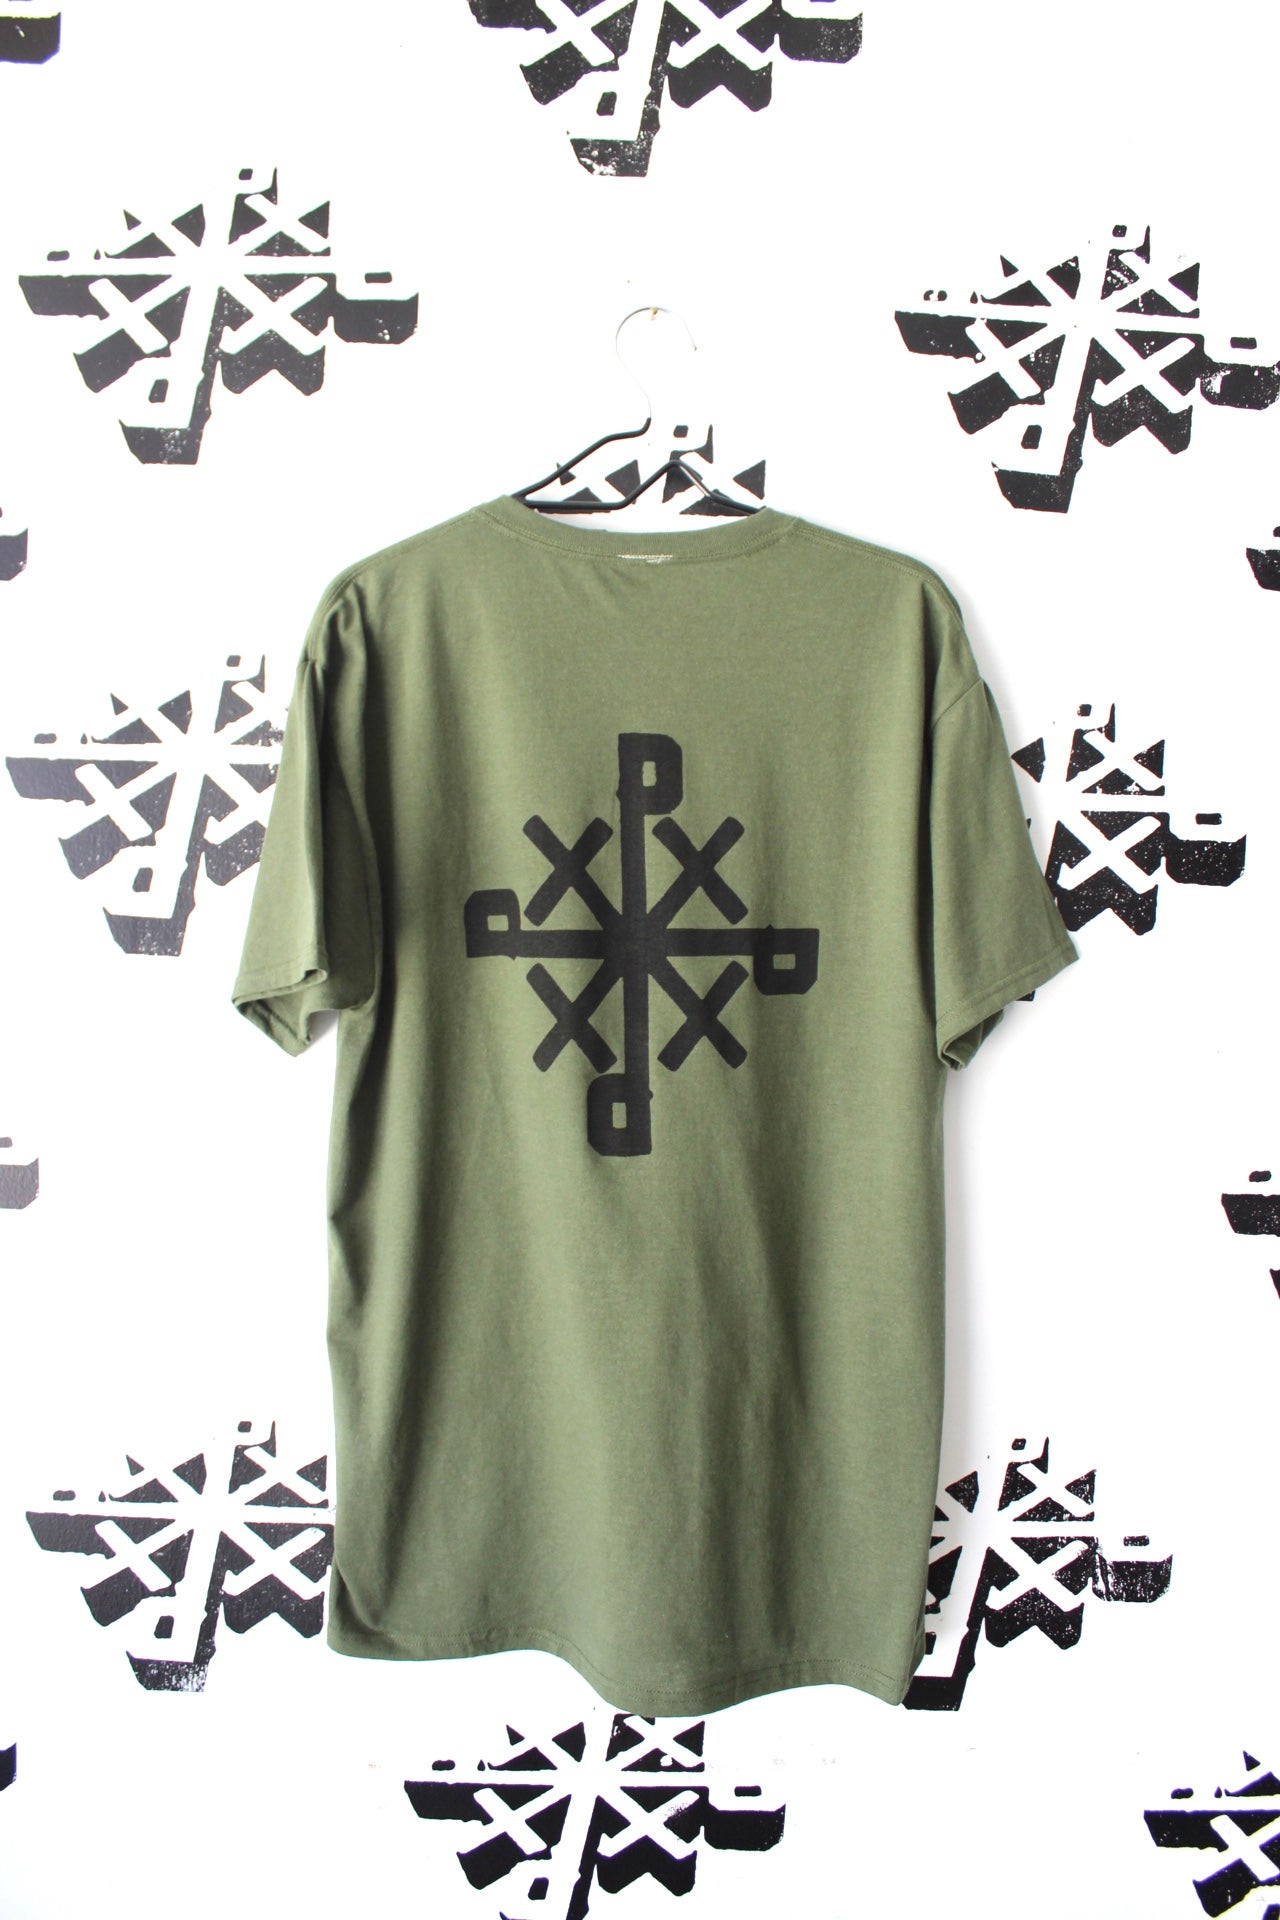 Image of have you tried tee in mil green